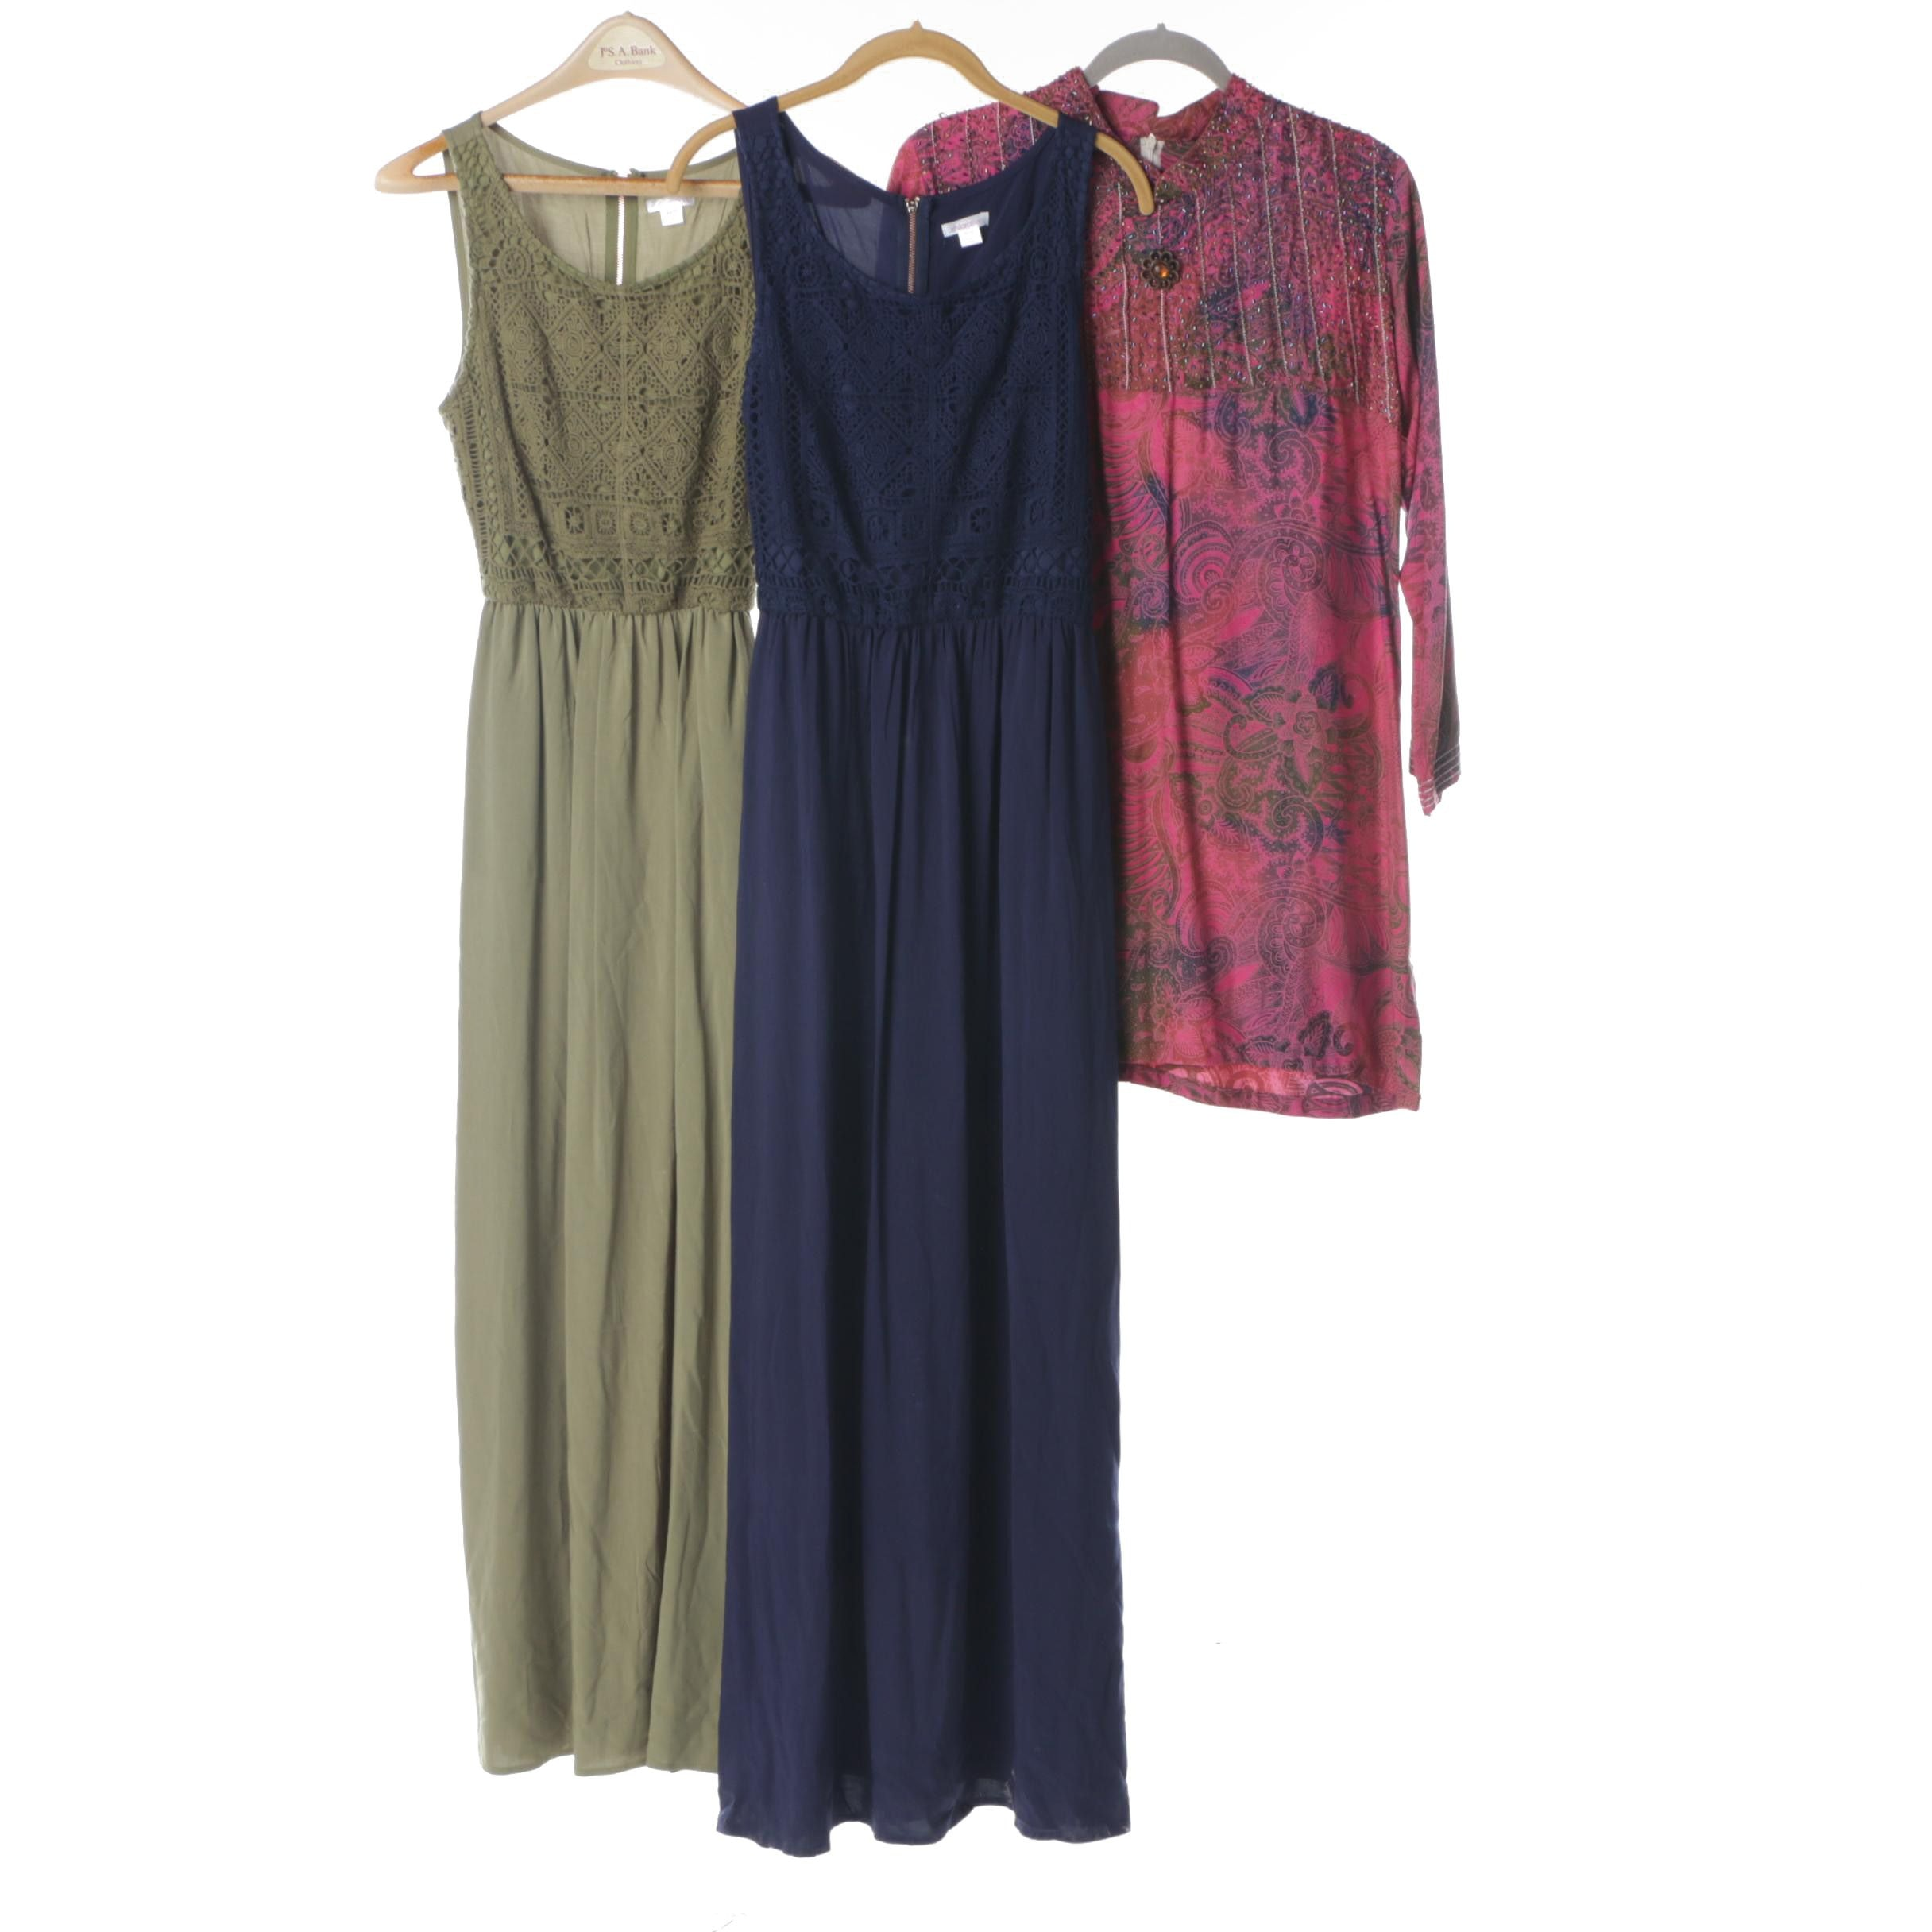 Women's Dresses Including Xhilaration